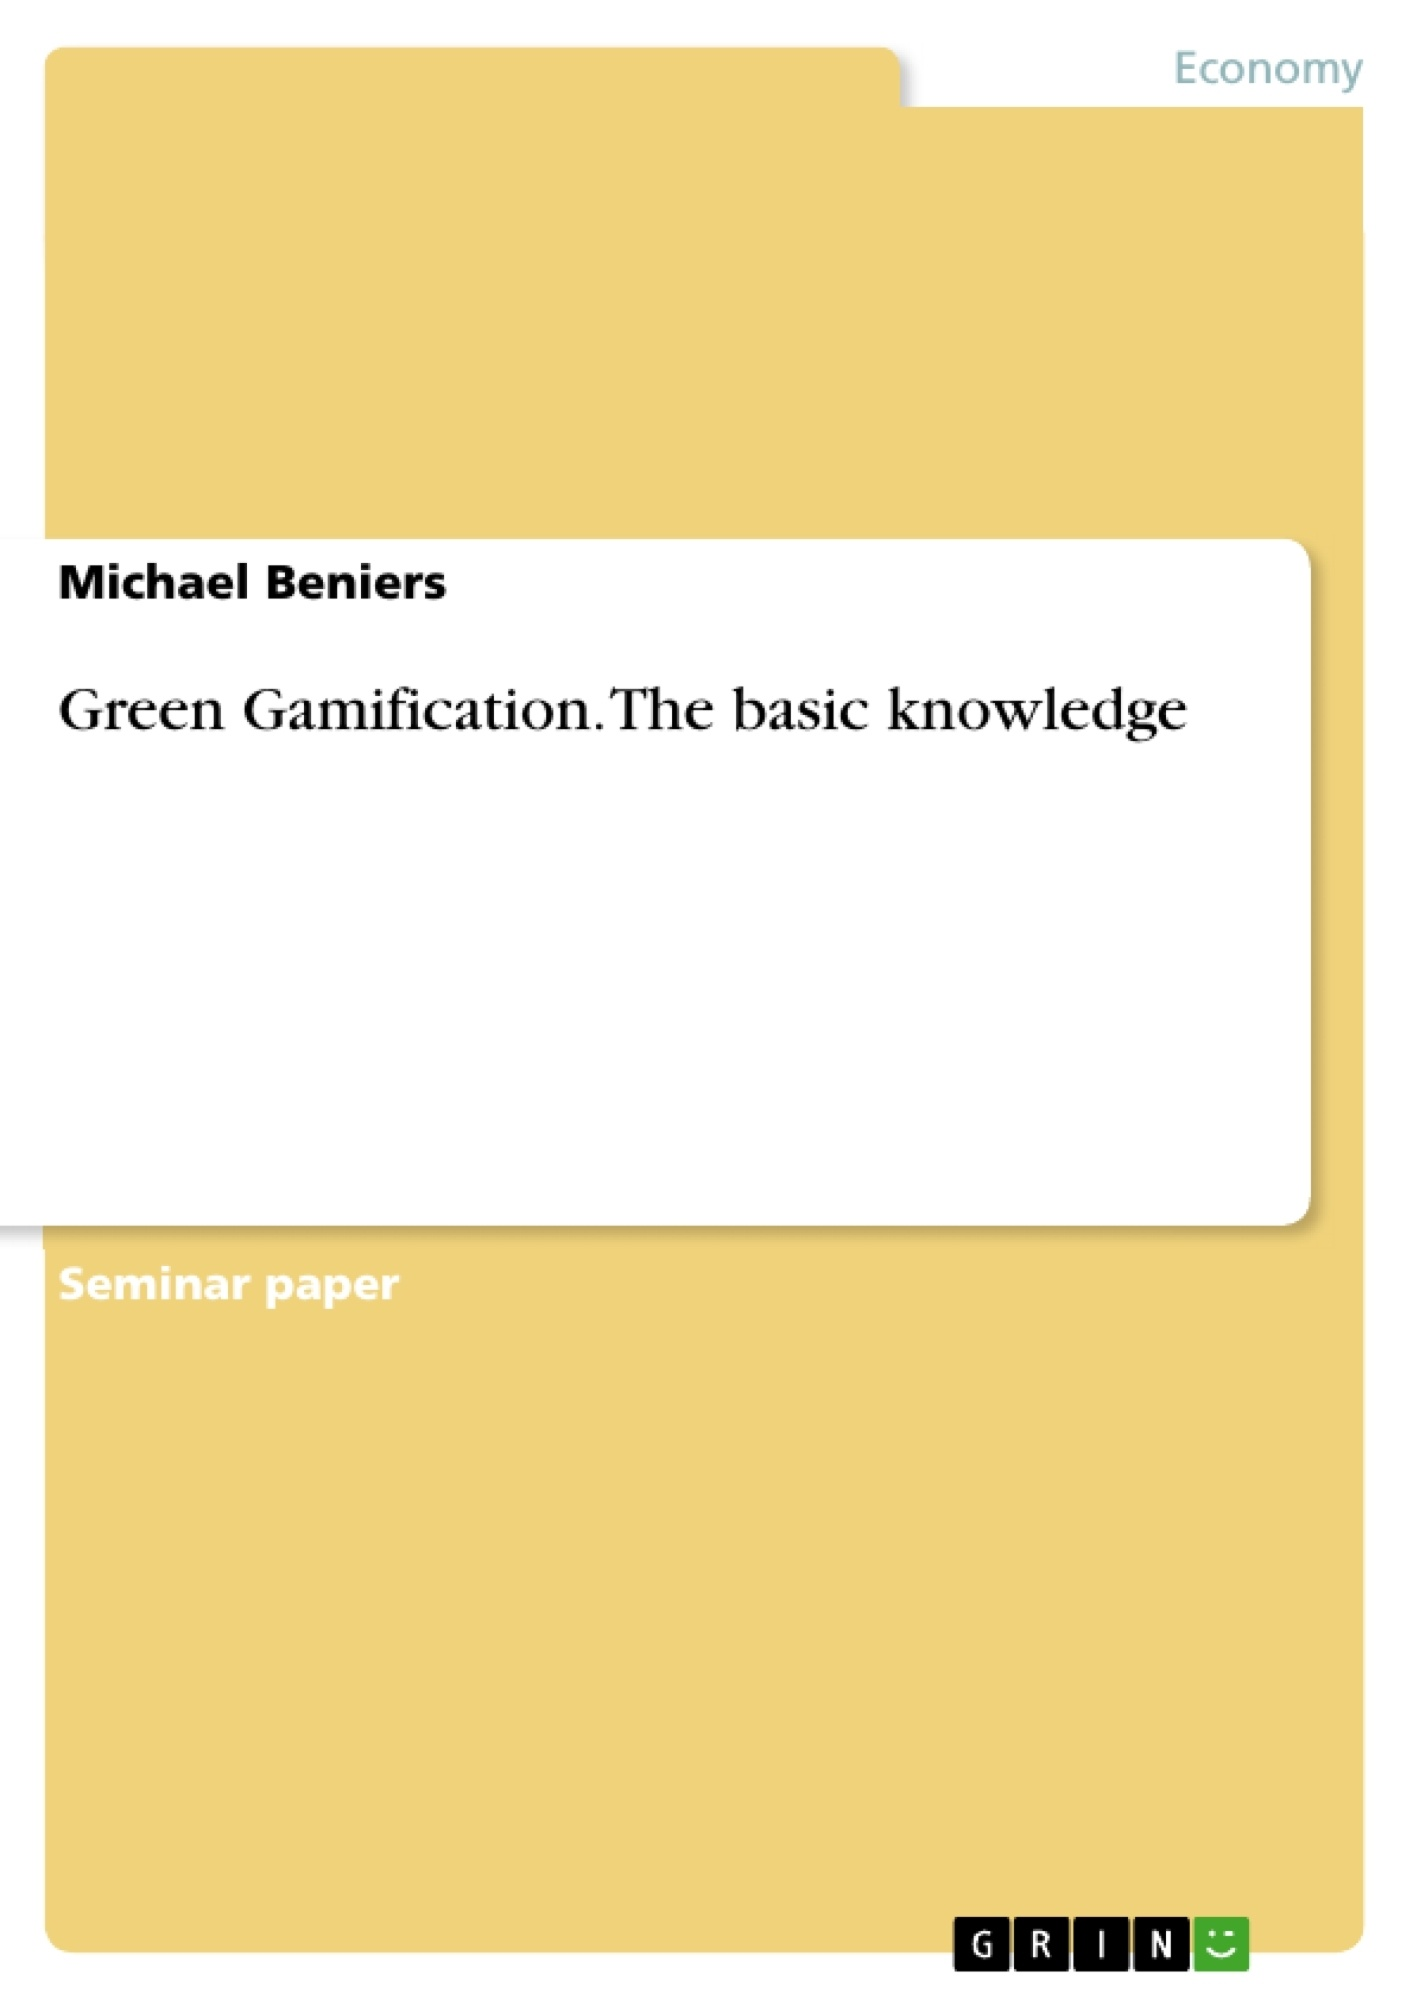 Title: Green Gamification. The basic knowledge